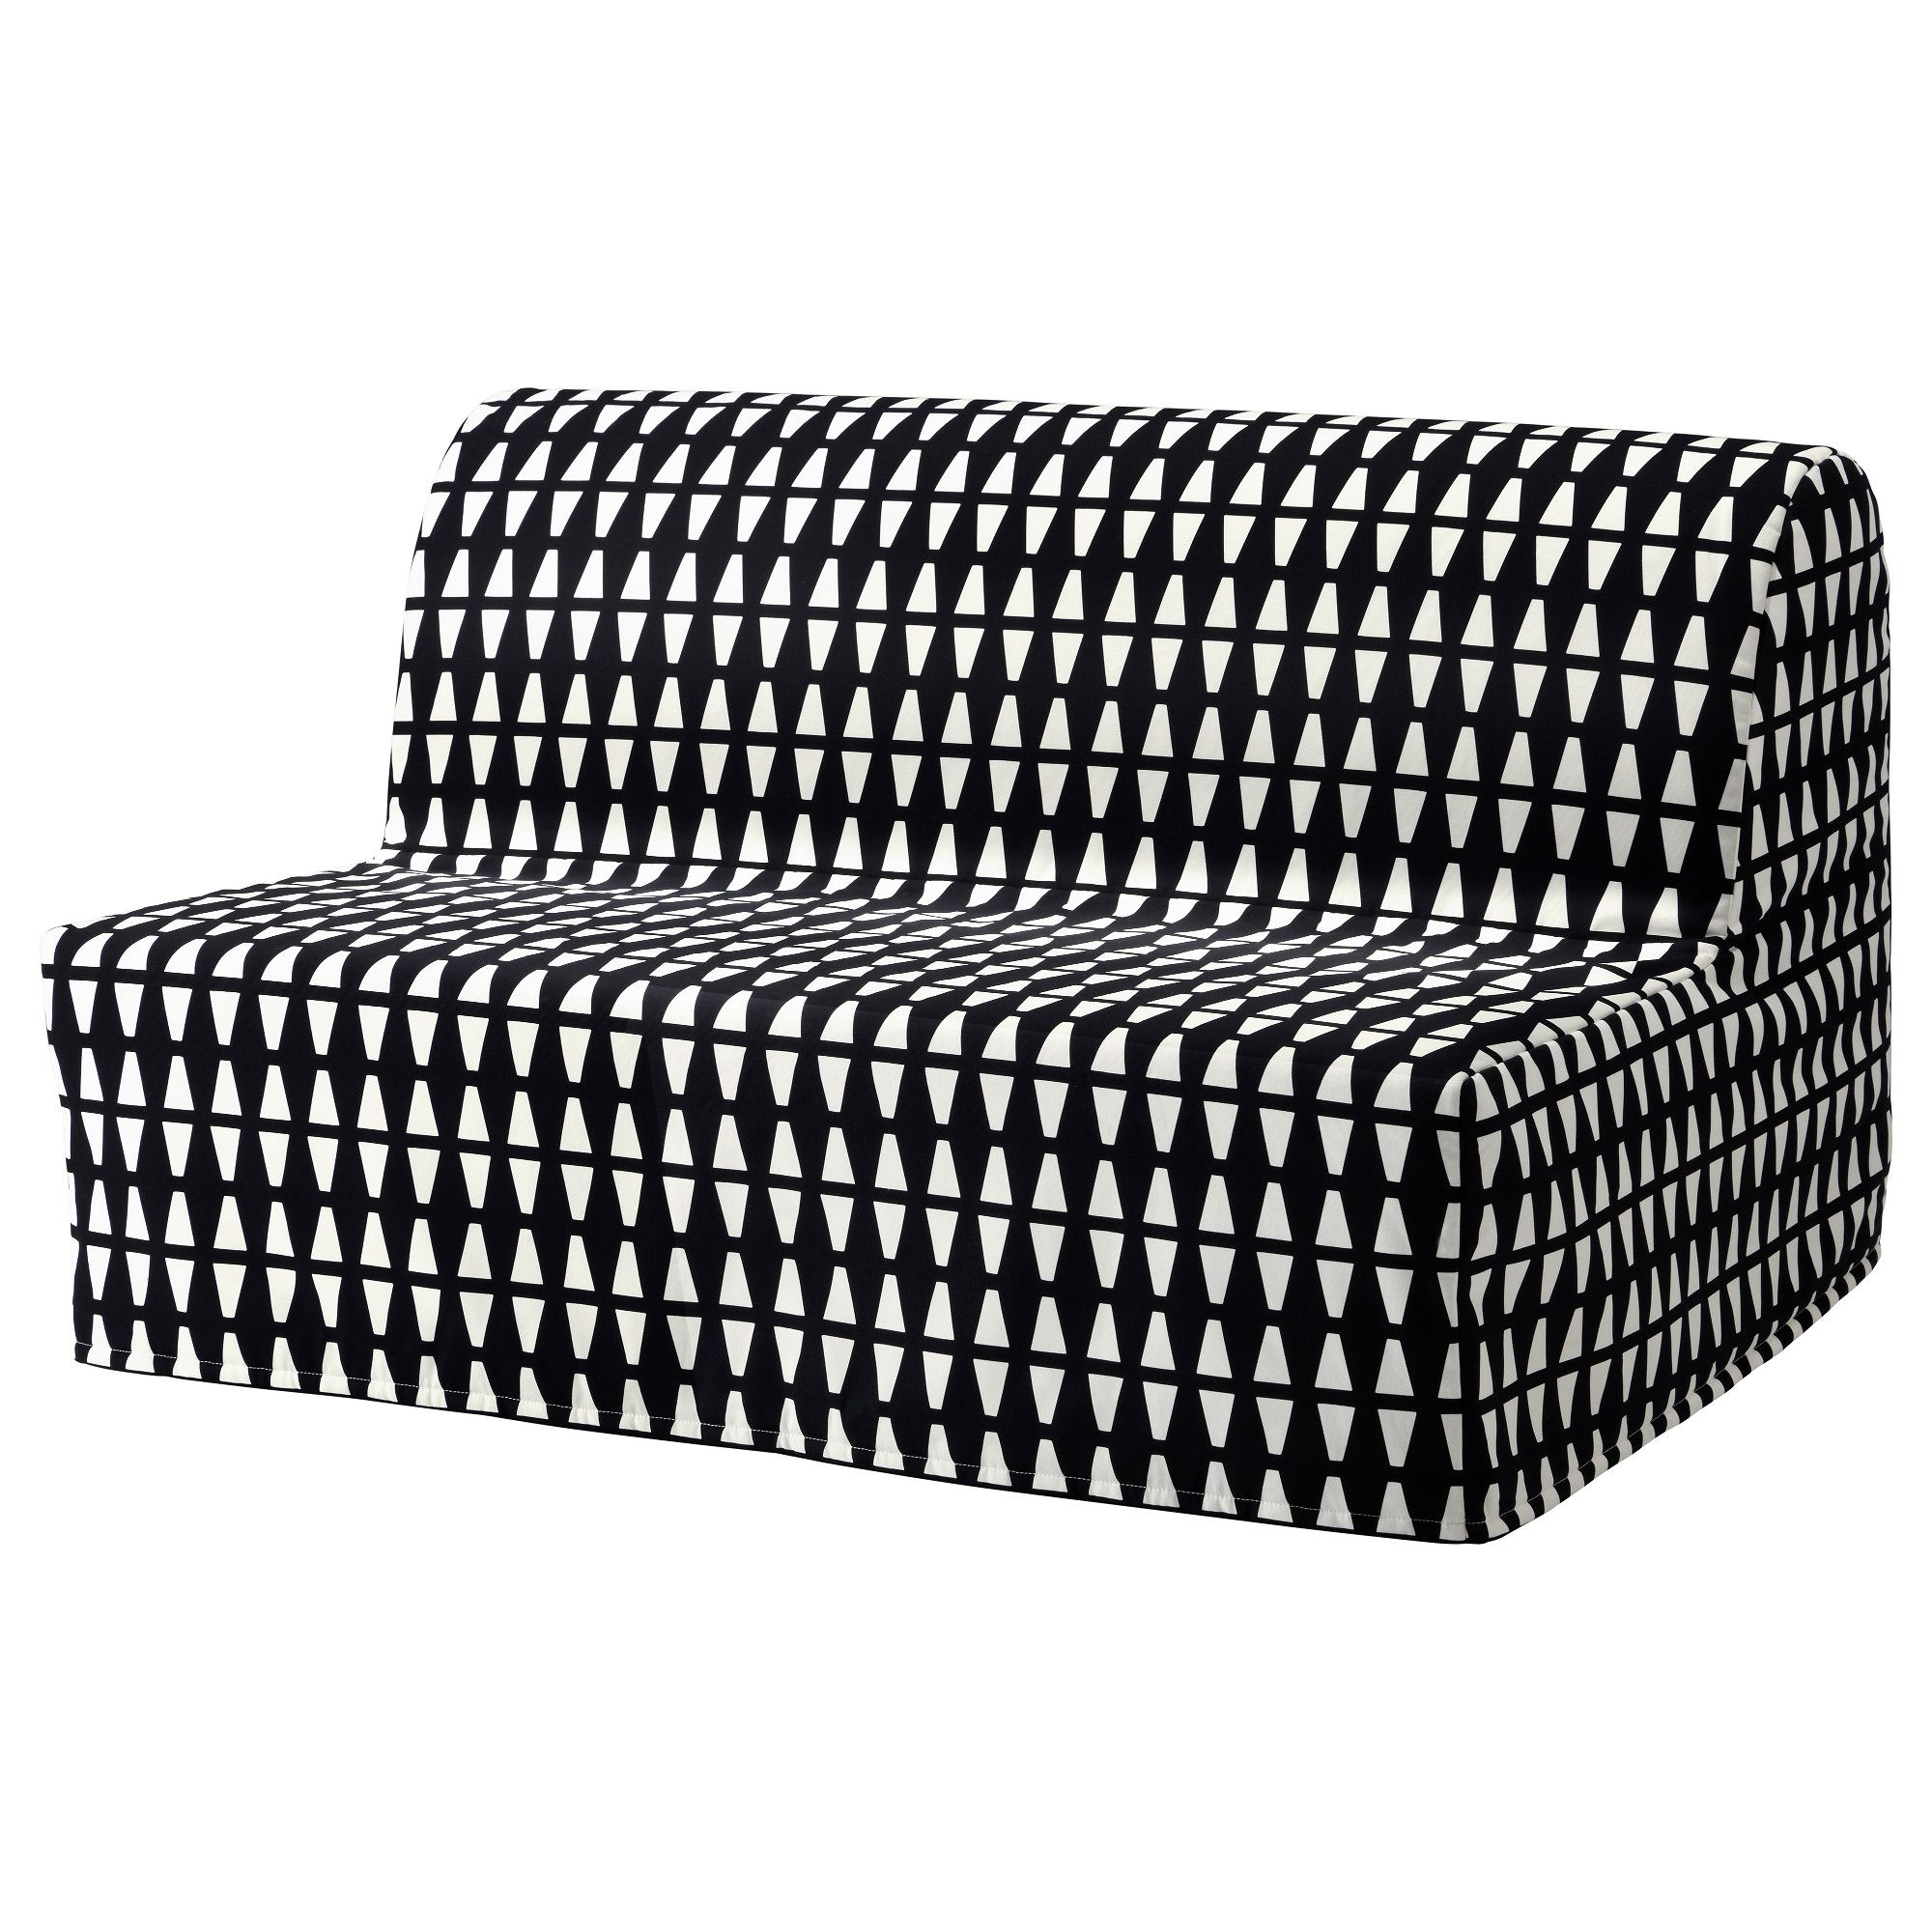 Ikea Lycksele LÖvÅs Sleeper Sofa Ebbarp Black White The Cover Is Easy To Keep Clean As It Removable And Can Be Machine Washed Made Of